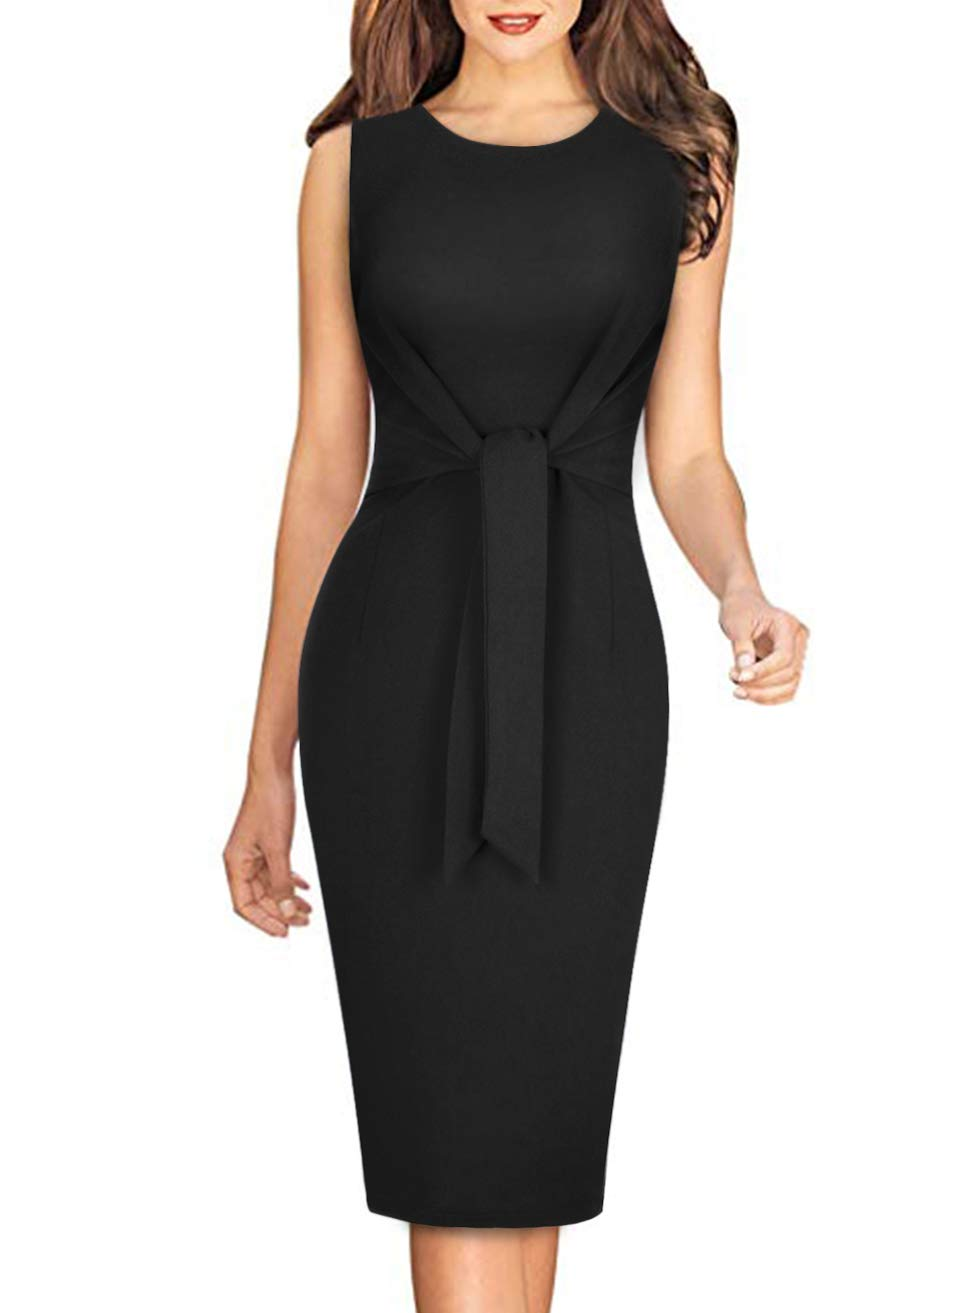 Moyabo Womens Tie Knot Front Sleeveless Round Neck Business Office Work Pencil Dress